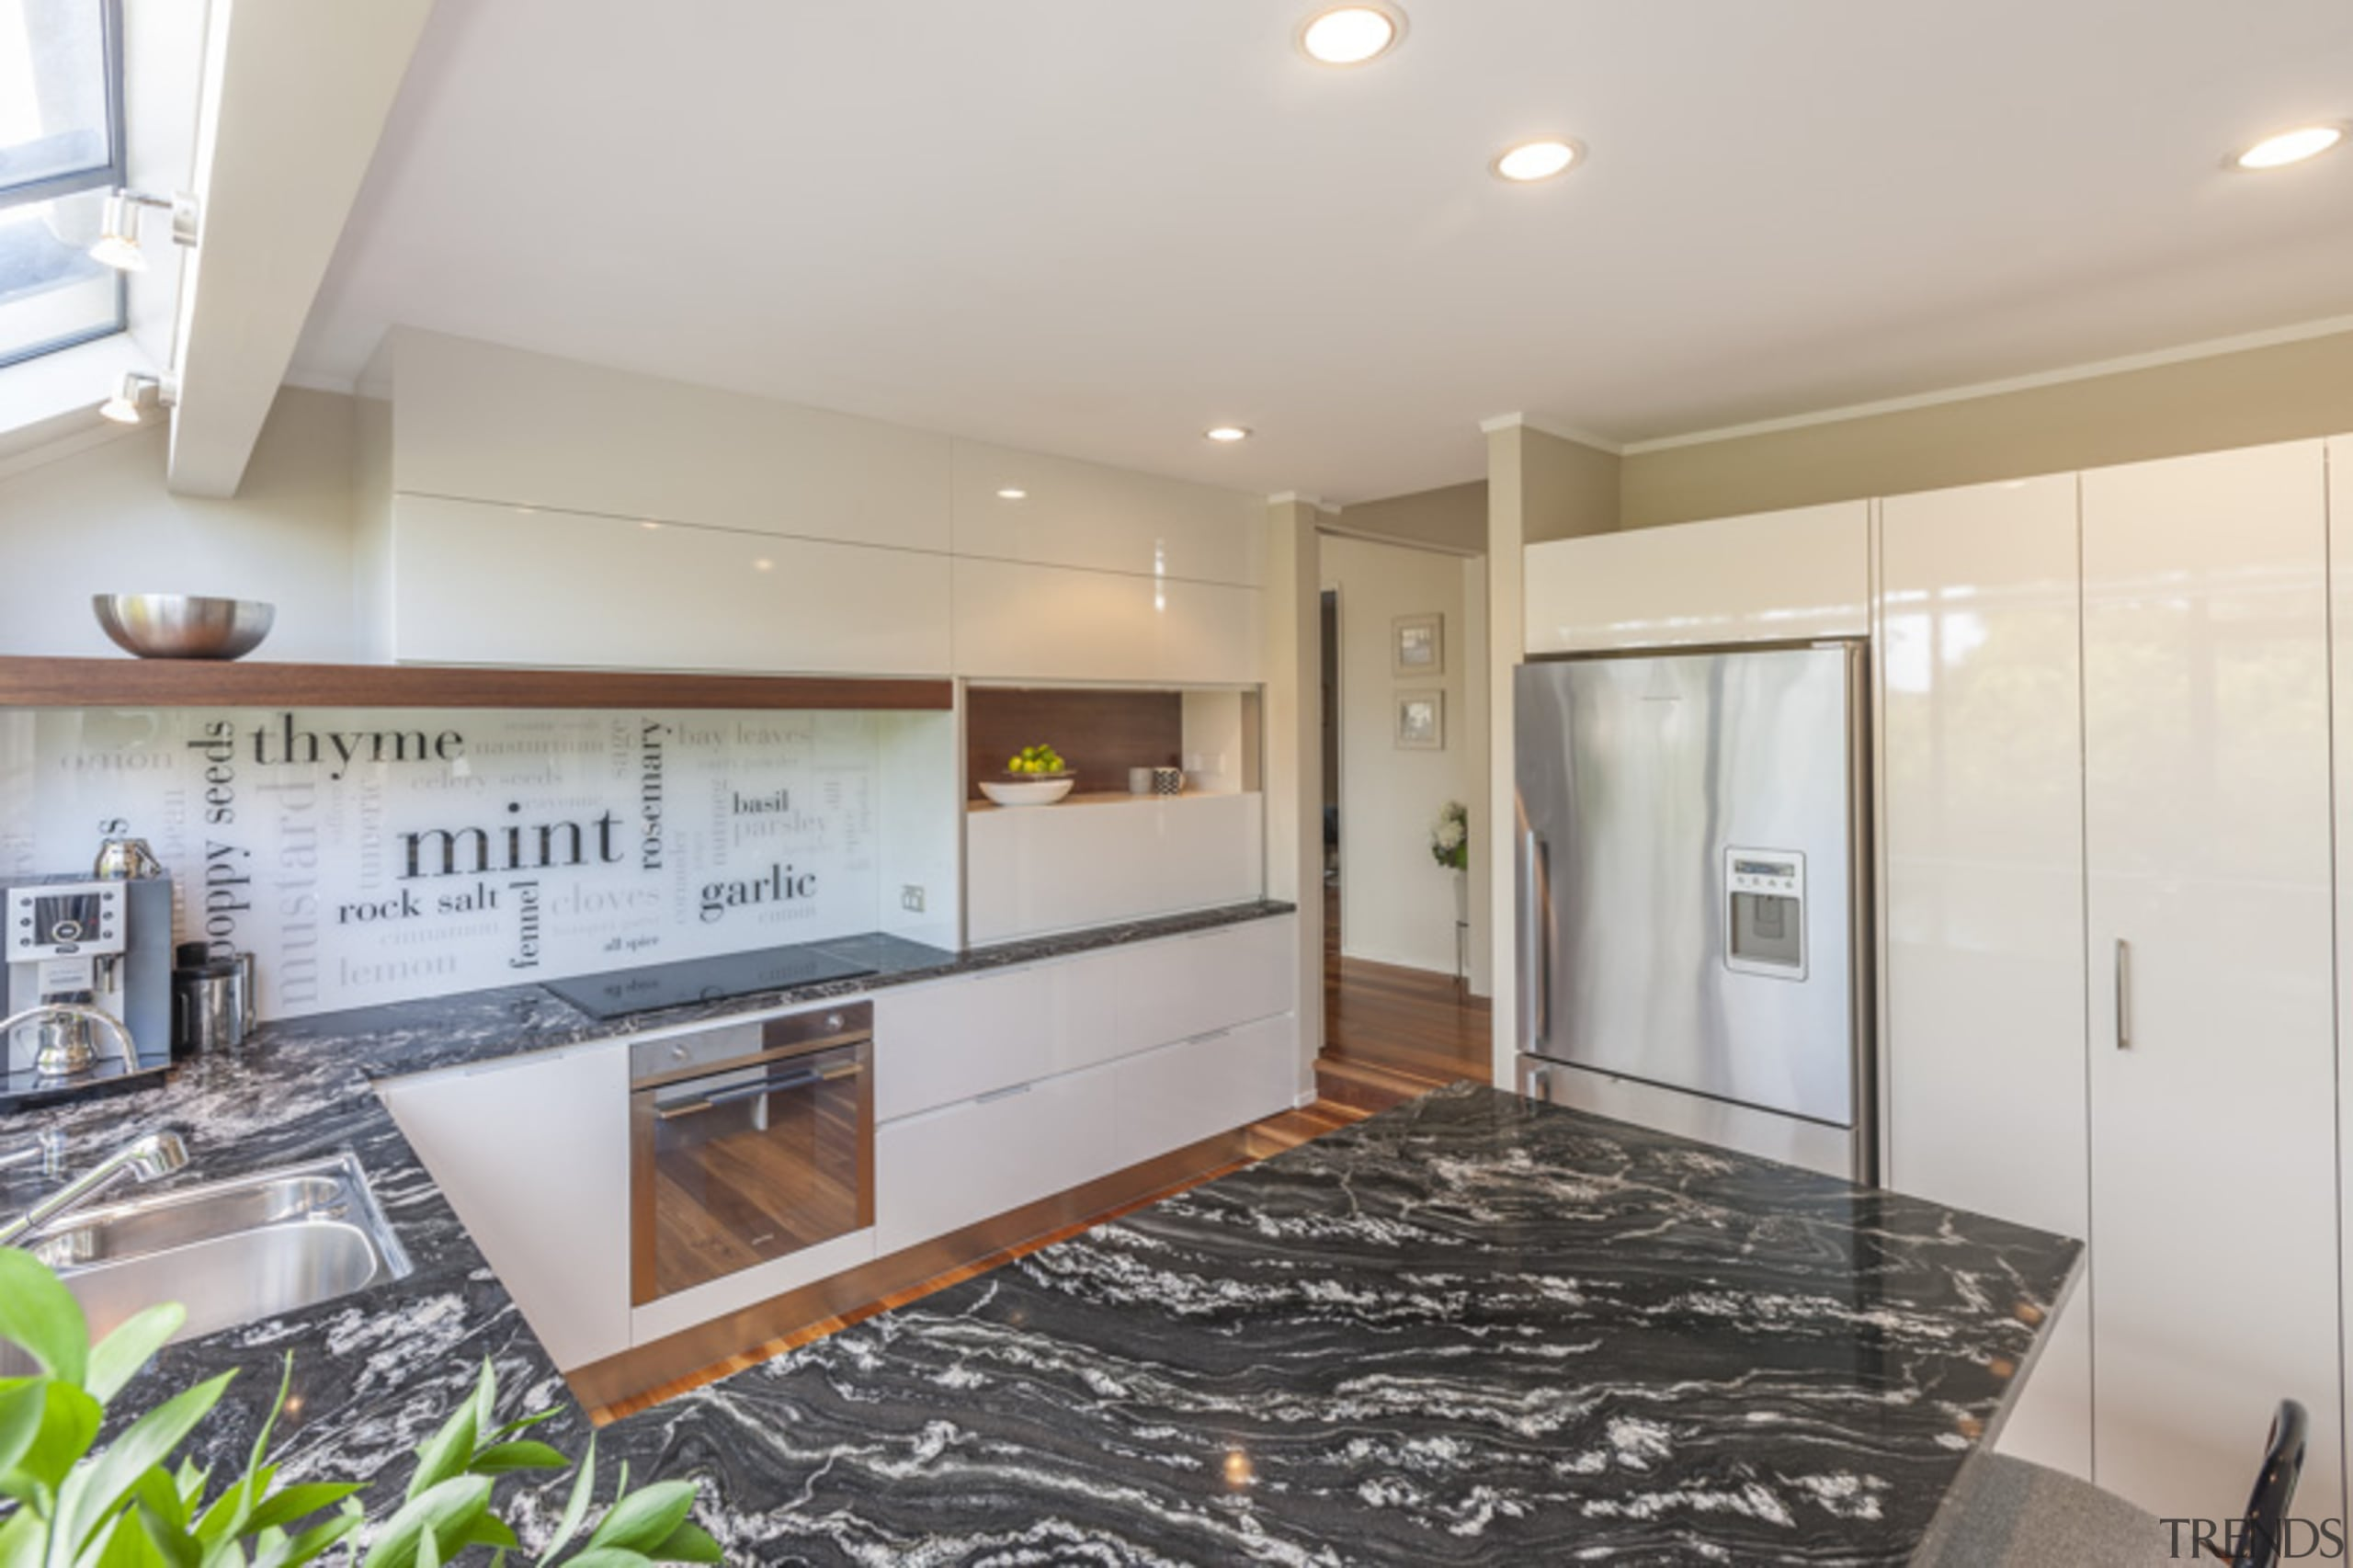 St. Heliers II - home | interior design home, interior design, property, real estate, room, gray